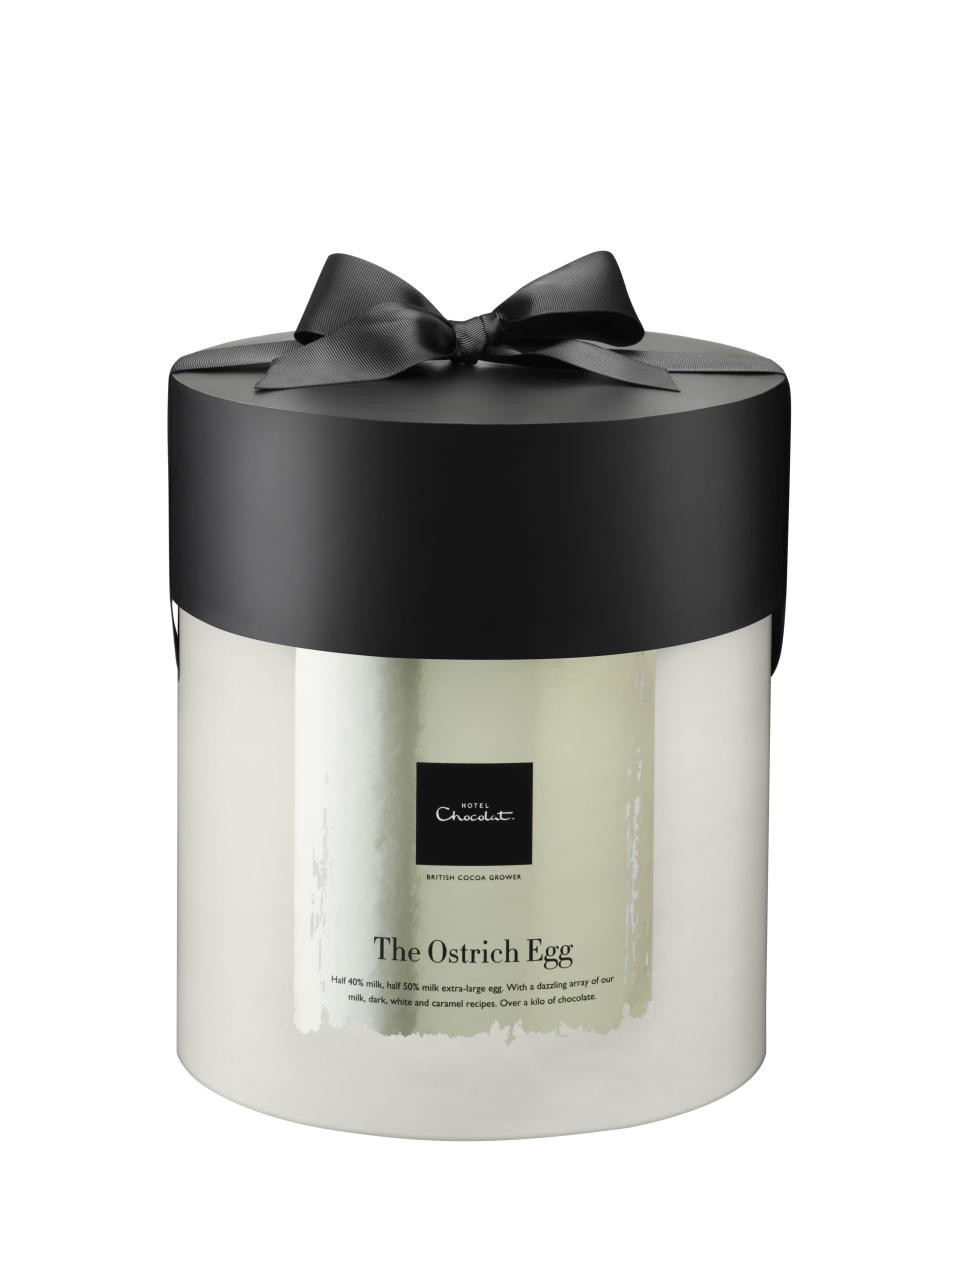 The Luxury Ostrich Egg from Hotel Chocolat [Photo: Hotel Chocolat]